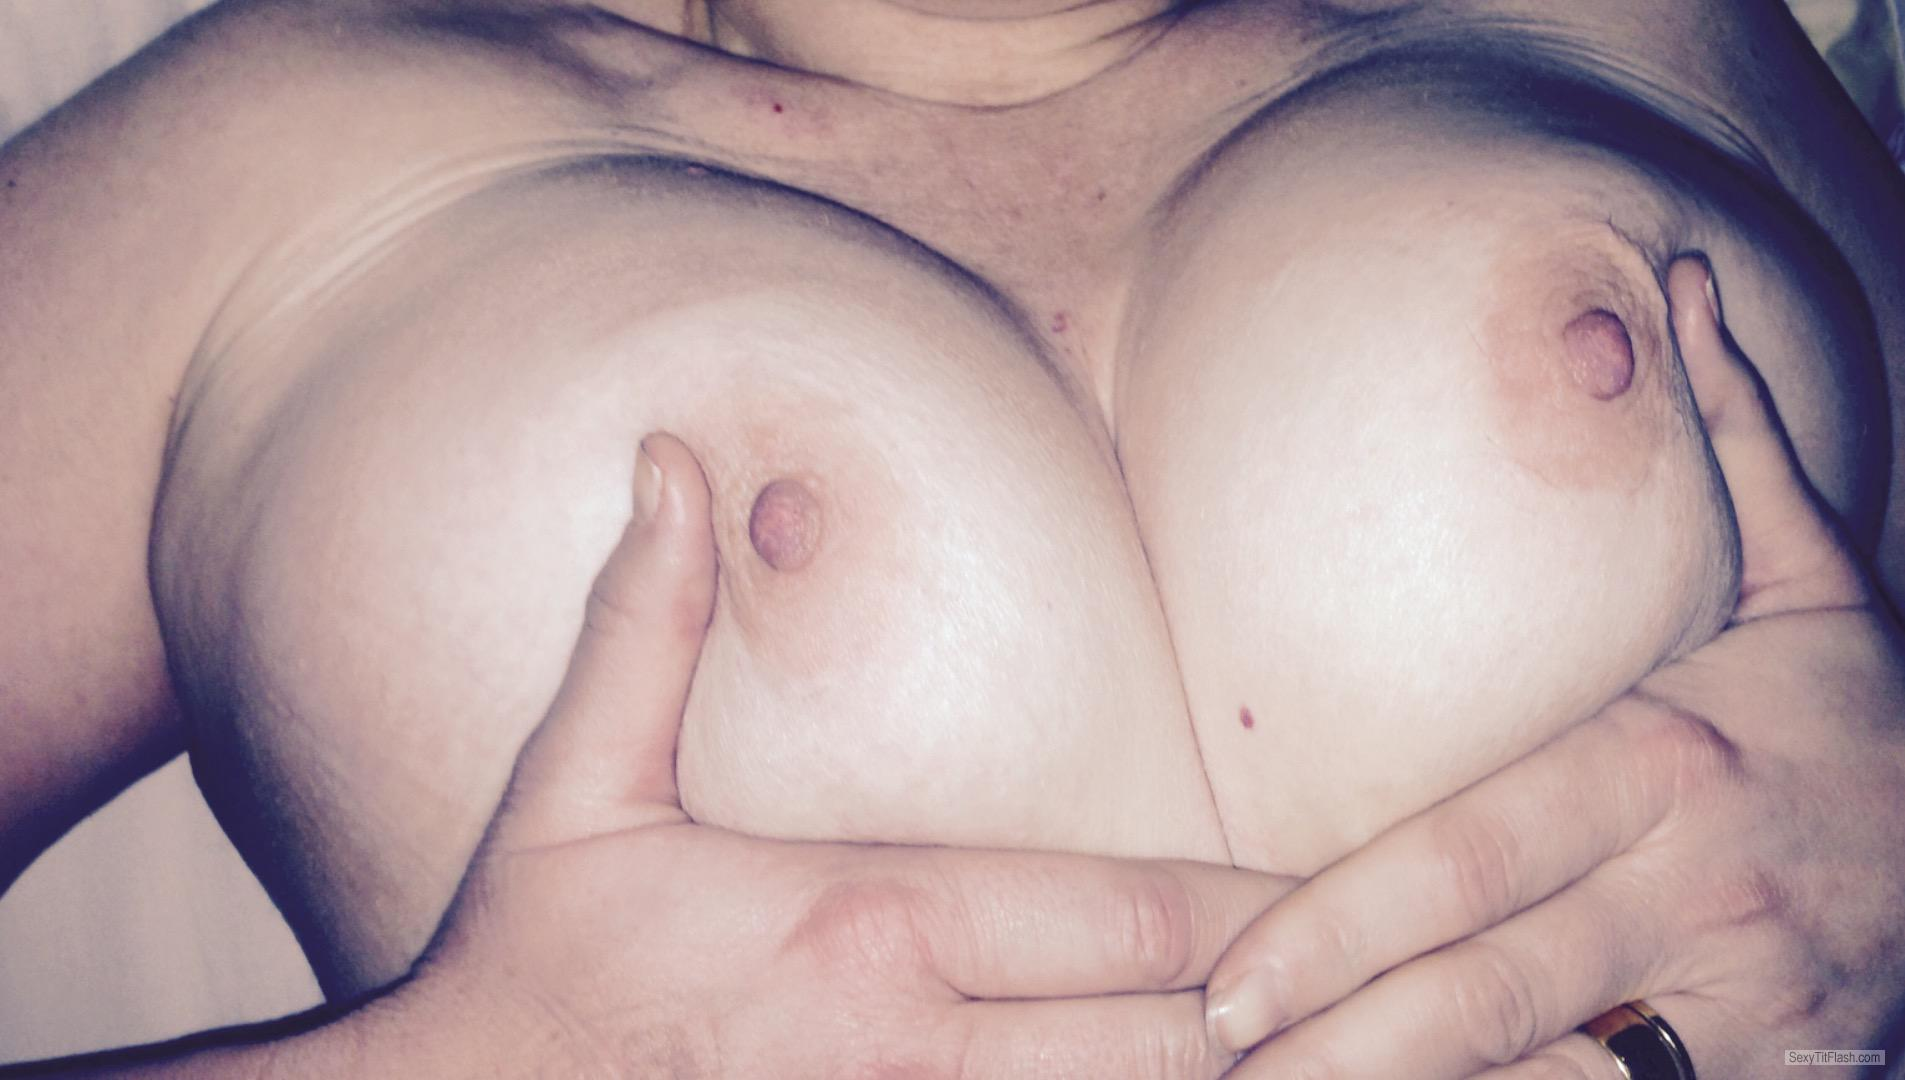 Tit Flash: Wife's Big Tits - Topless Titsucker from United Kingdom